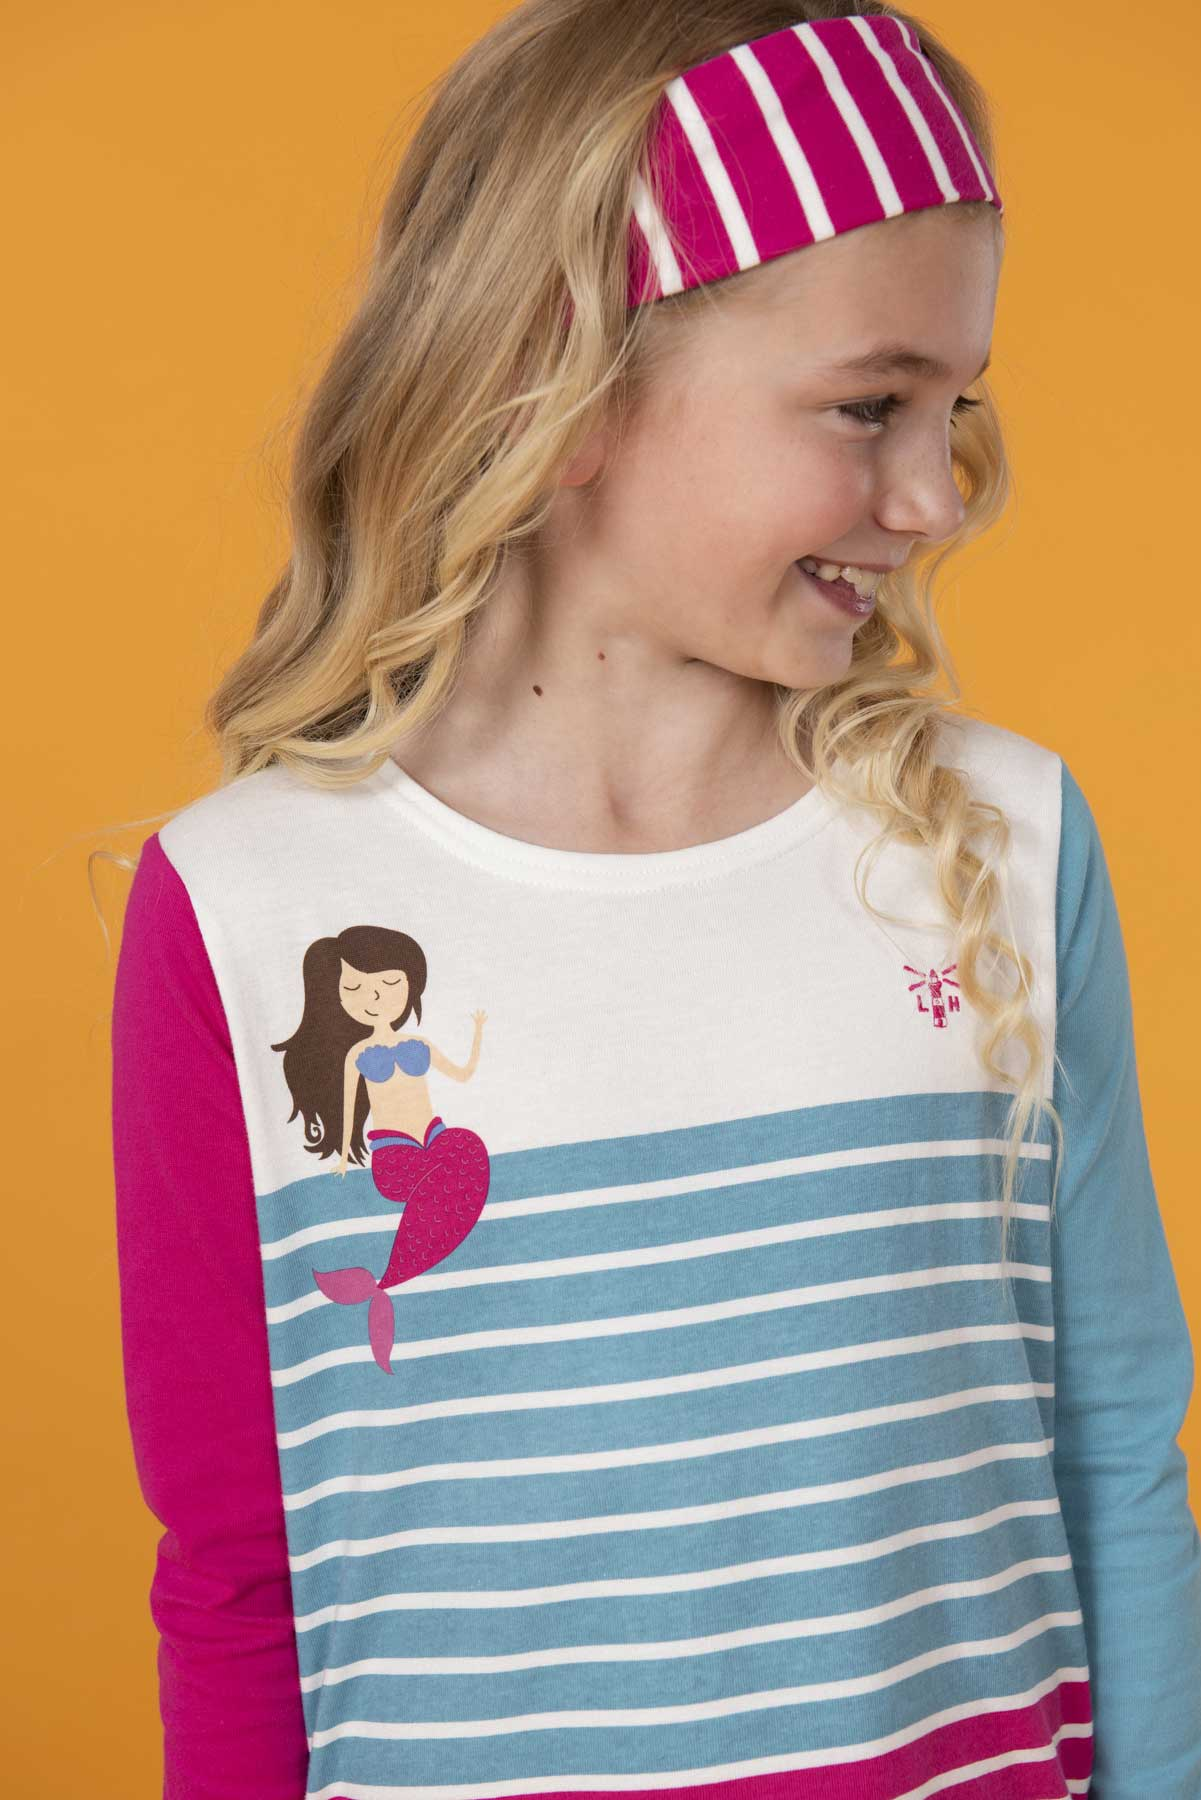 Girl's Tops - Causeway - Mermaid striped top